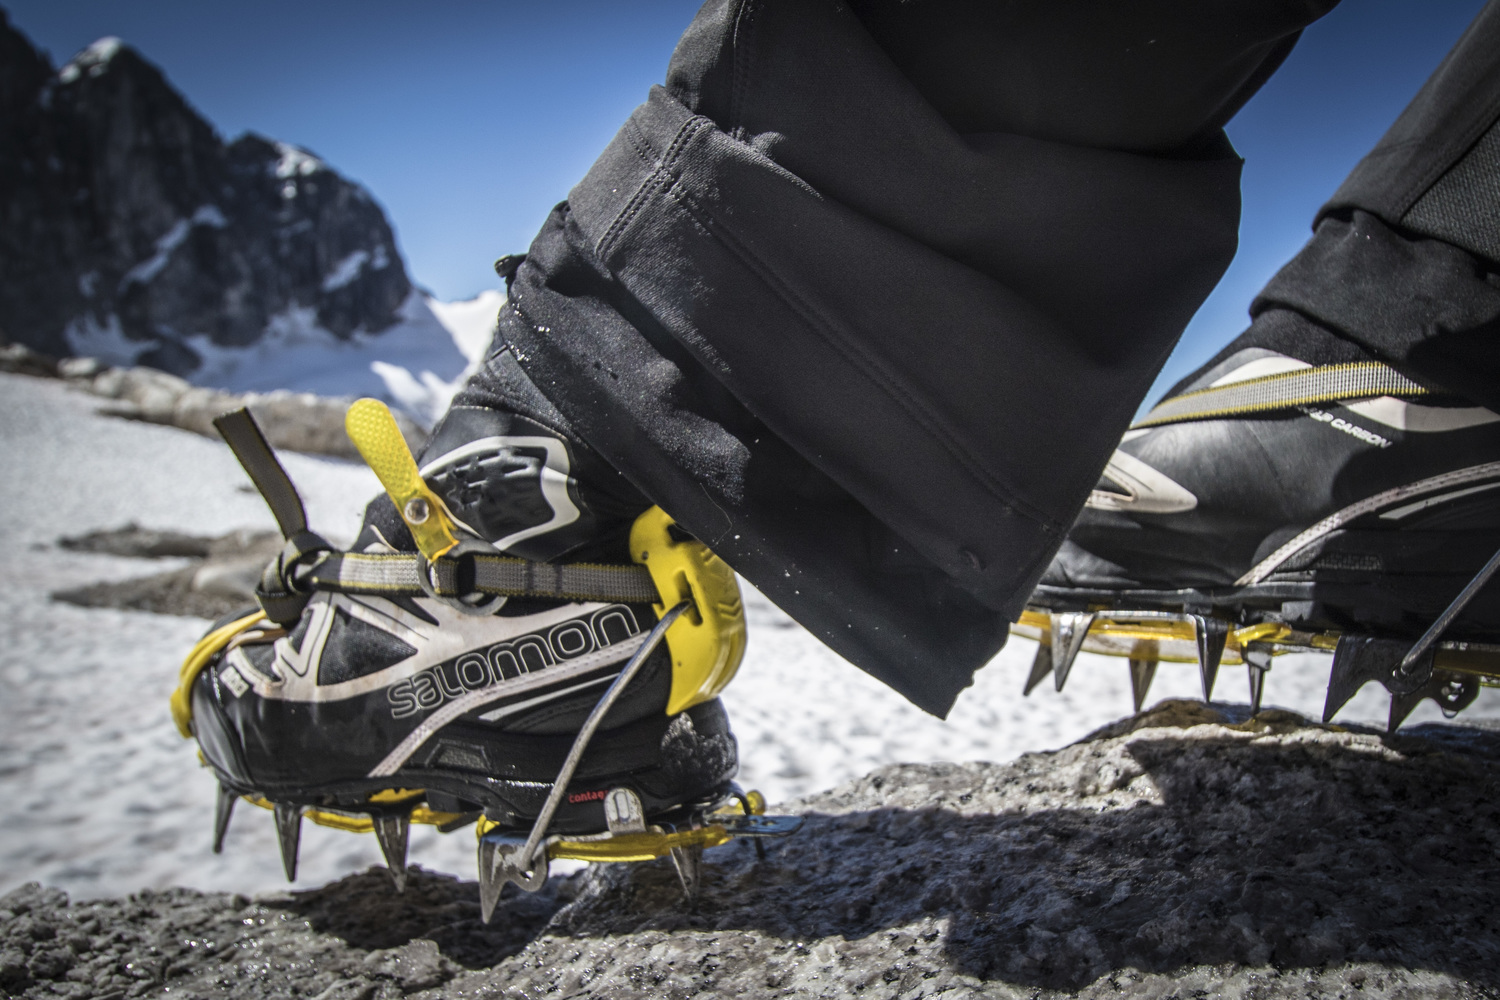 Ultralight and crampon compatible.  These are some seriously kickass boots.